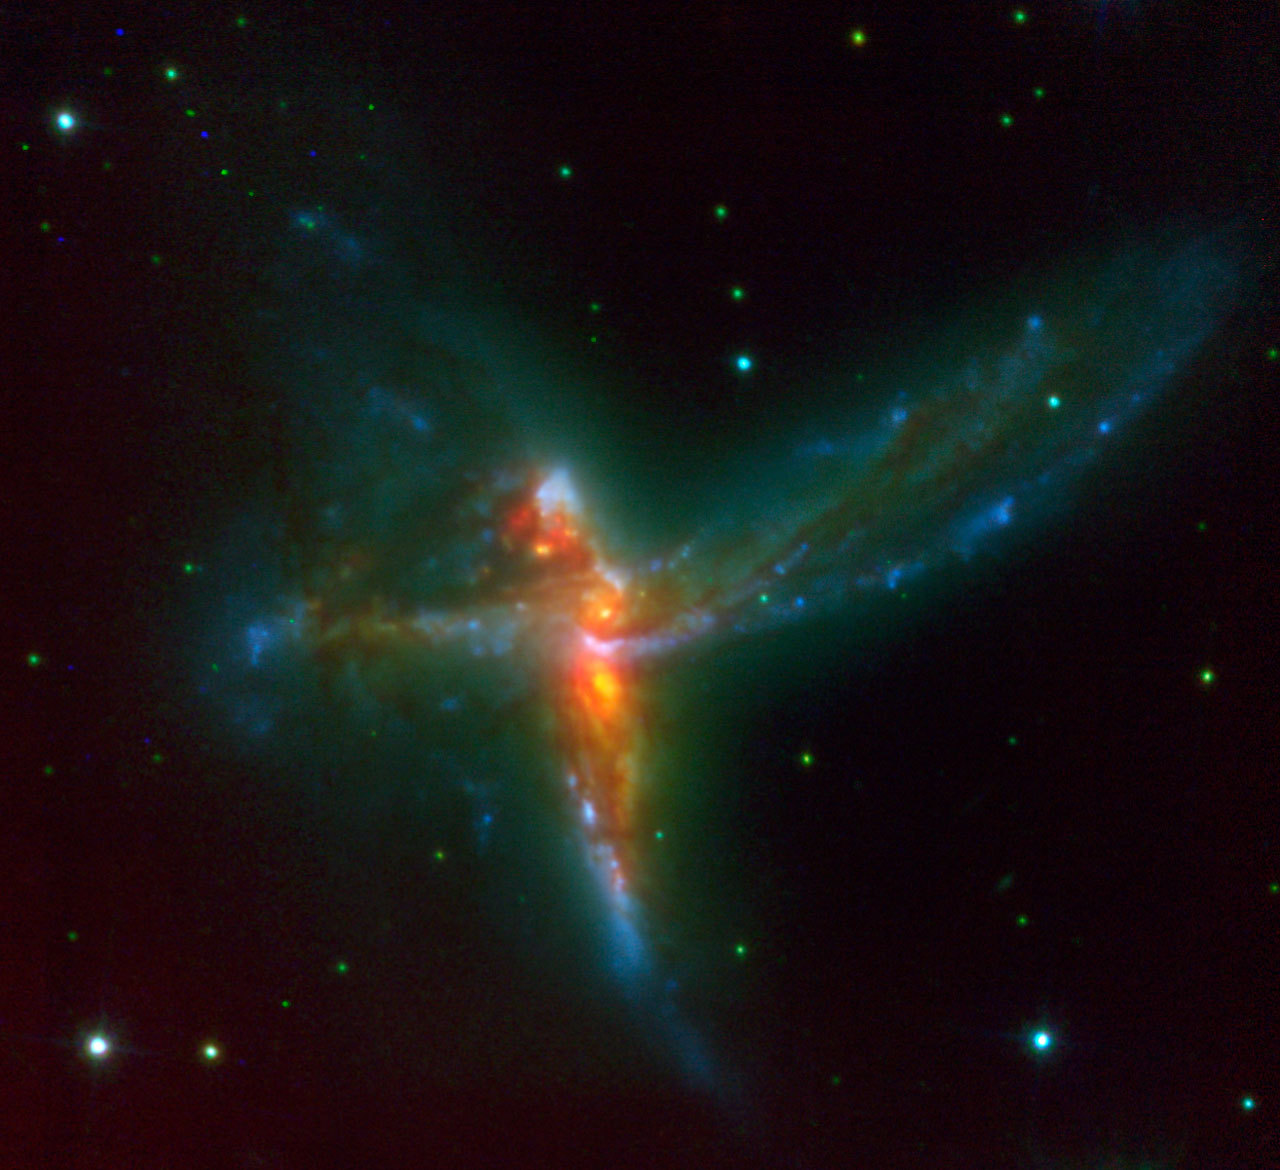 spacettf:  ESO - eso0755a The Tinker Bell Triplet Using ESO's Very Large Telescope, an international team of astronomers has discovered a stunning rare case of a triple merger of galaxies. This system, which astronomers have dubbed 'The Bird' - although it also bears resemblance with a cosmic Tinker Bell - is composed of two massive spiral galaxies and a third irregular galaxy. In this image, a 30-min VLT/NACO K-band exposure has been combined with archive HST/ACS B and I-band images to produce a three-colour image of the 'Bird' interacting galaxy system. The NACO image has allowed astronomers to not only see the two previously known galaxies, but to identify a third, clearly separate component, an irregular, yet fairly massive galaxy that seems to form stars at a frantic rate. Credit: ESO